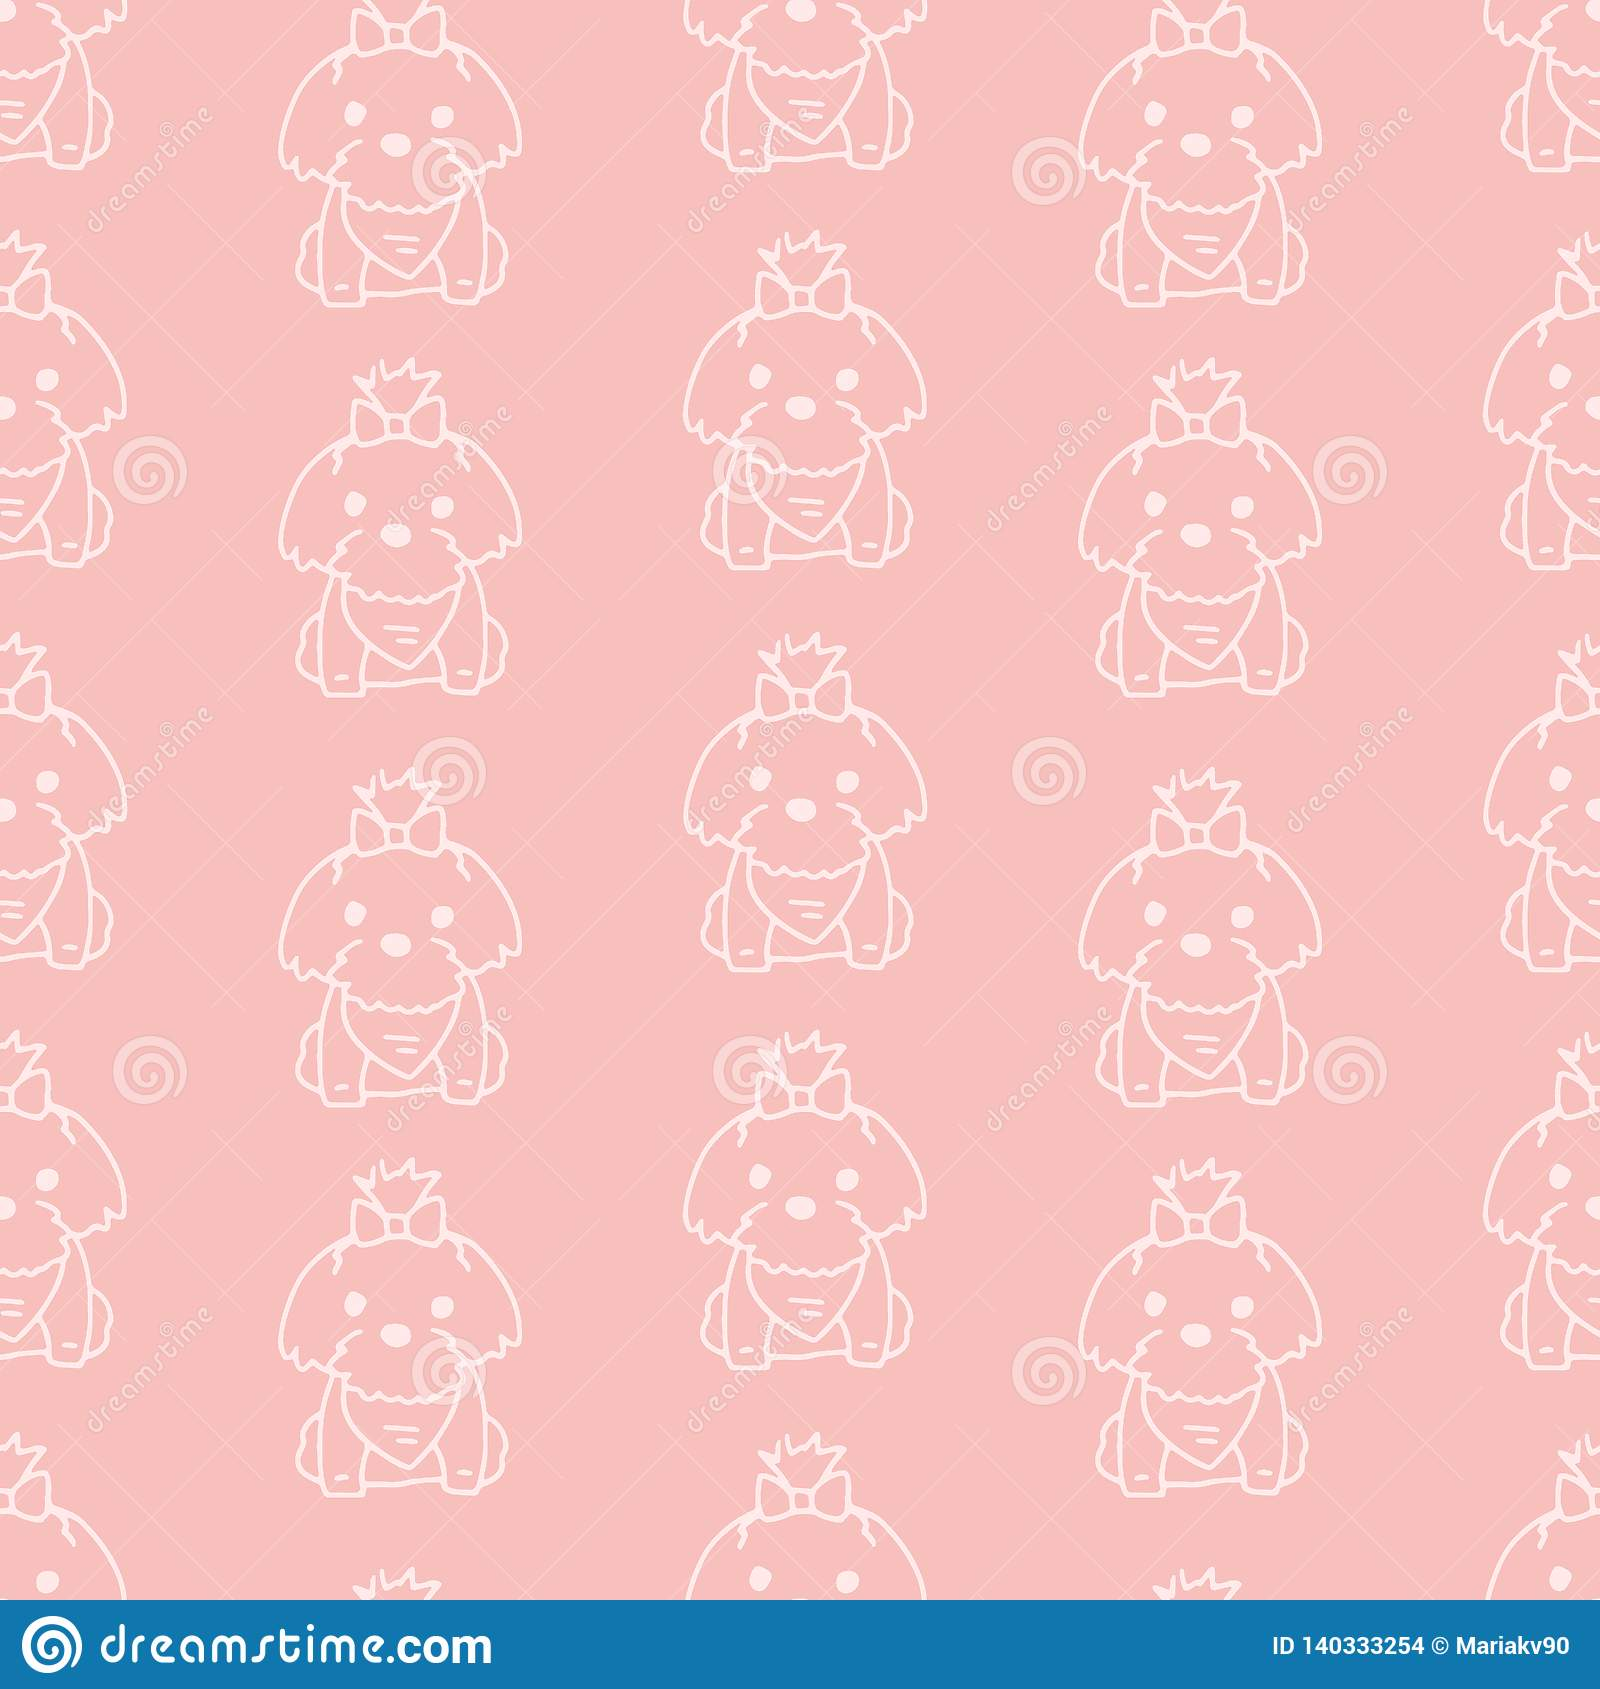 Vector Seamless Pattern With Cute Cartoon Dog Puppies Can Be Used As A Background Wallpaper Fabric And For Other Design Lap Stock Vector Illustration Of Backdrop Fabric 140333254